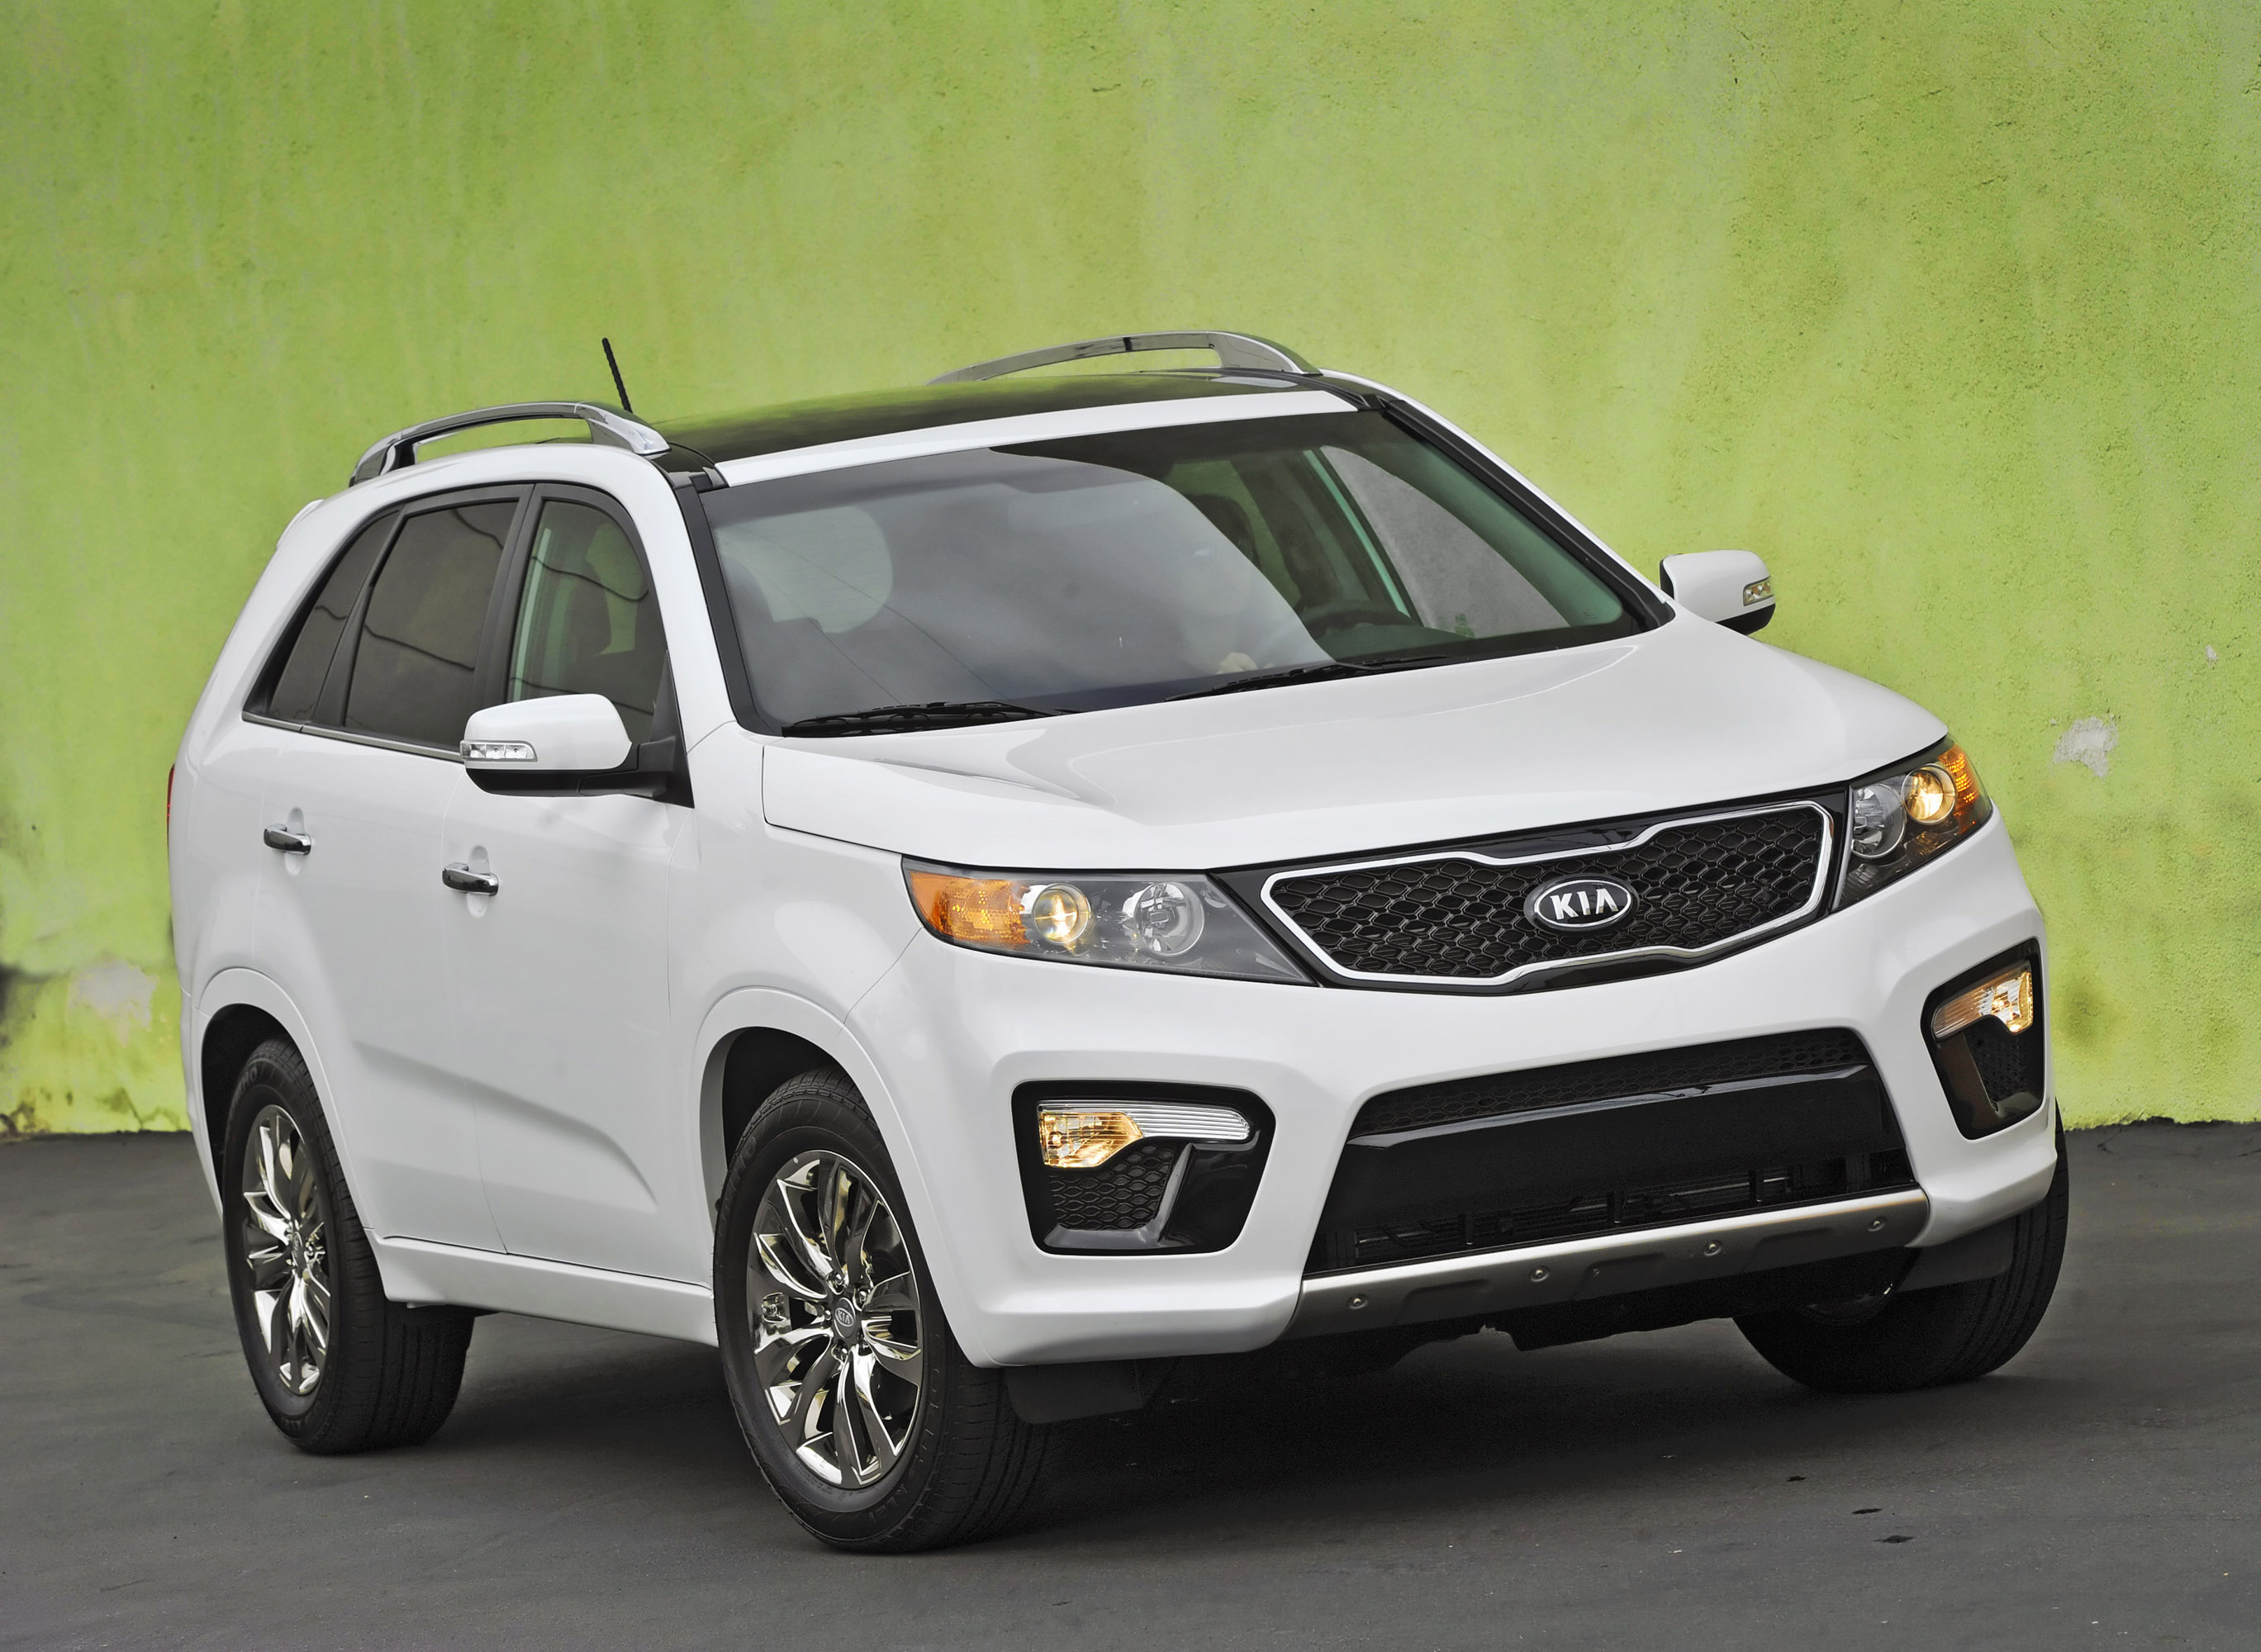 story point money dealerships in at west car onemillionthcarne builds millionth cars b georgia one kia ga factory